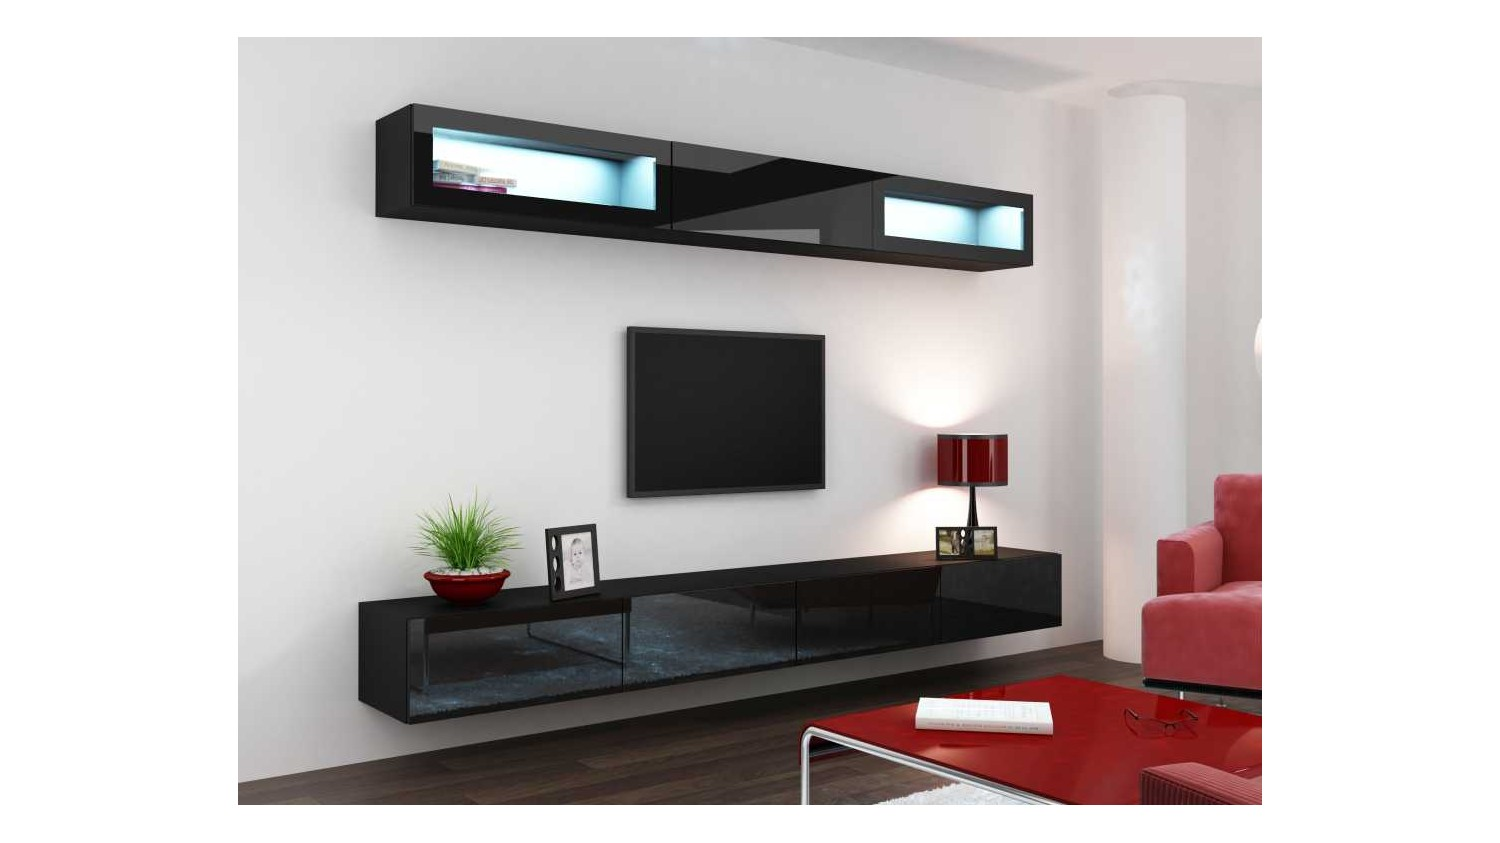 Meuble sous tv suspendu amiens design - Meuble tv suspendu but ...